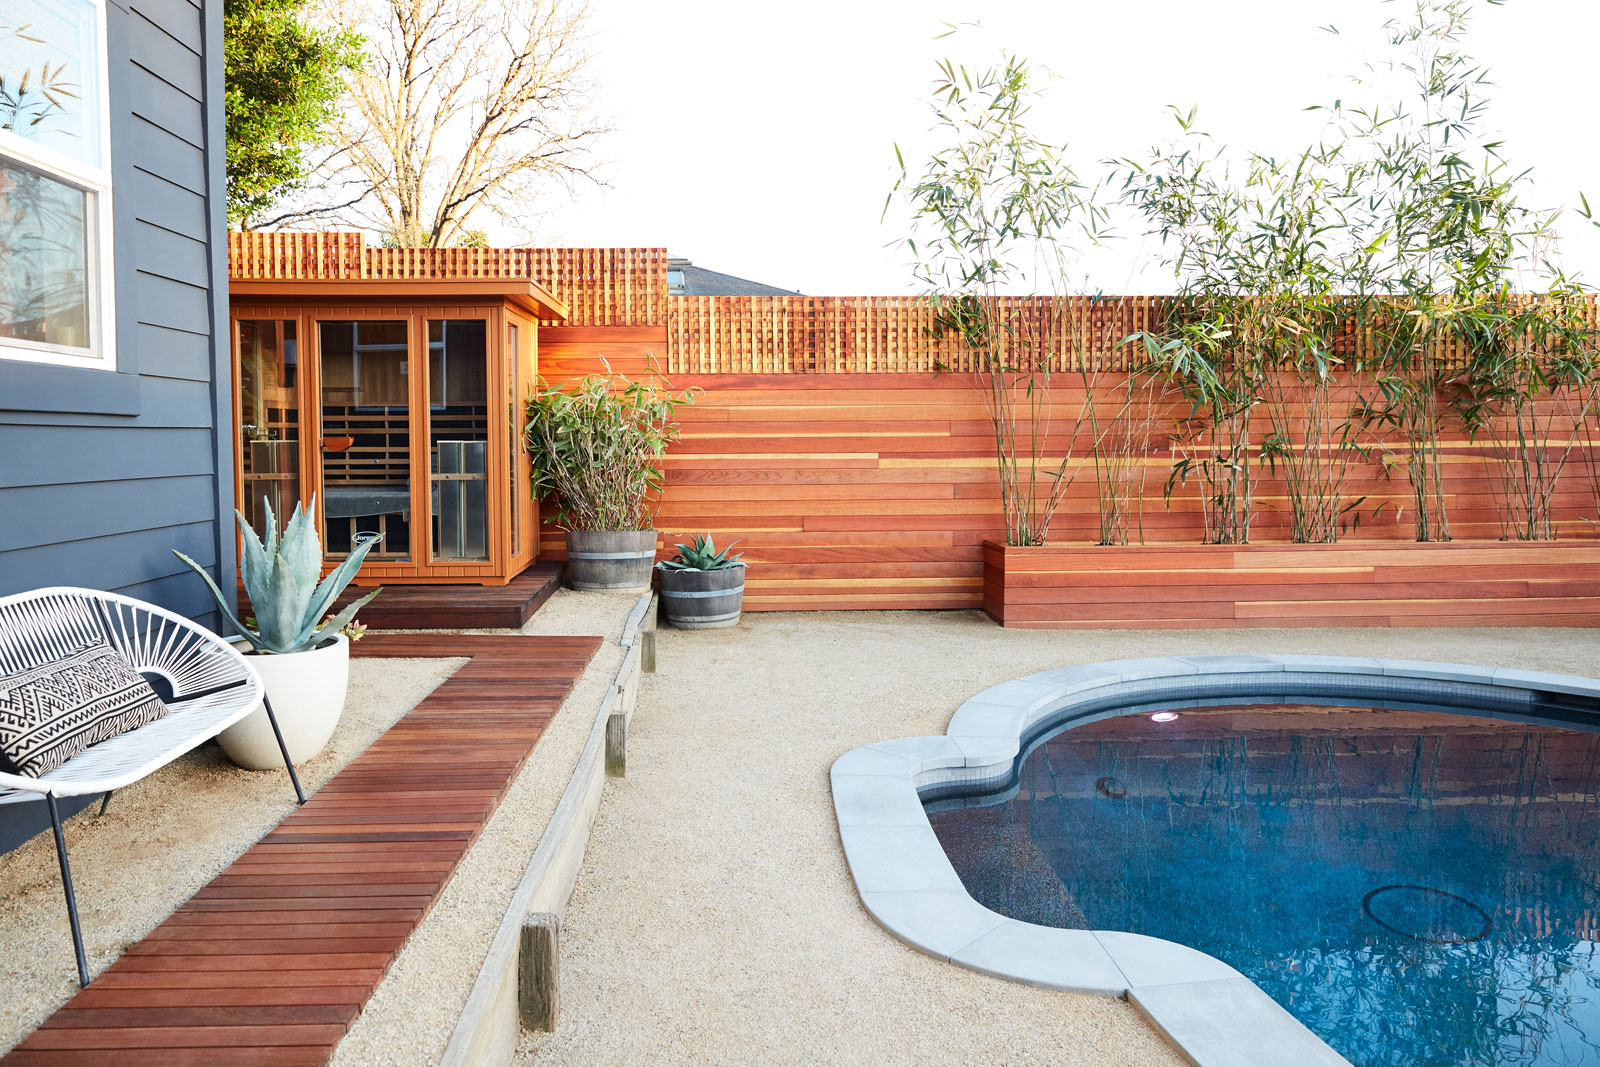 Backyard Pool & Sauna